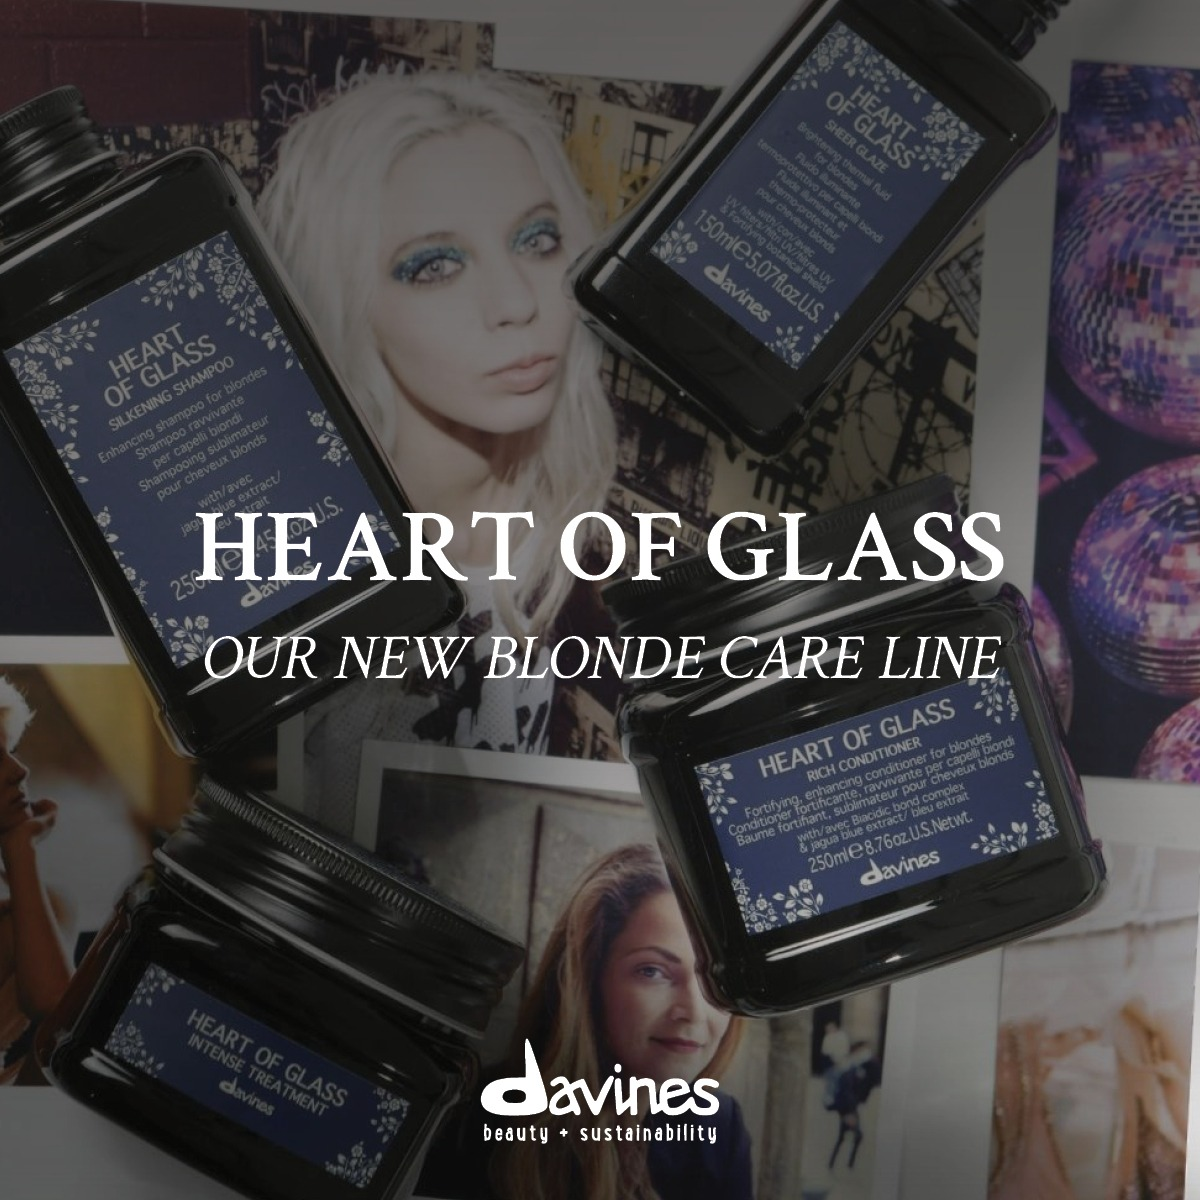 advertisement for Davines's Heart of Glass beauty products featuring a set of black labeled bottles with photographs of blonde ladies behind